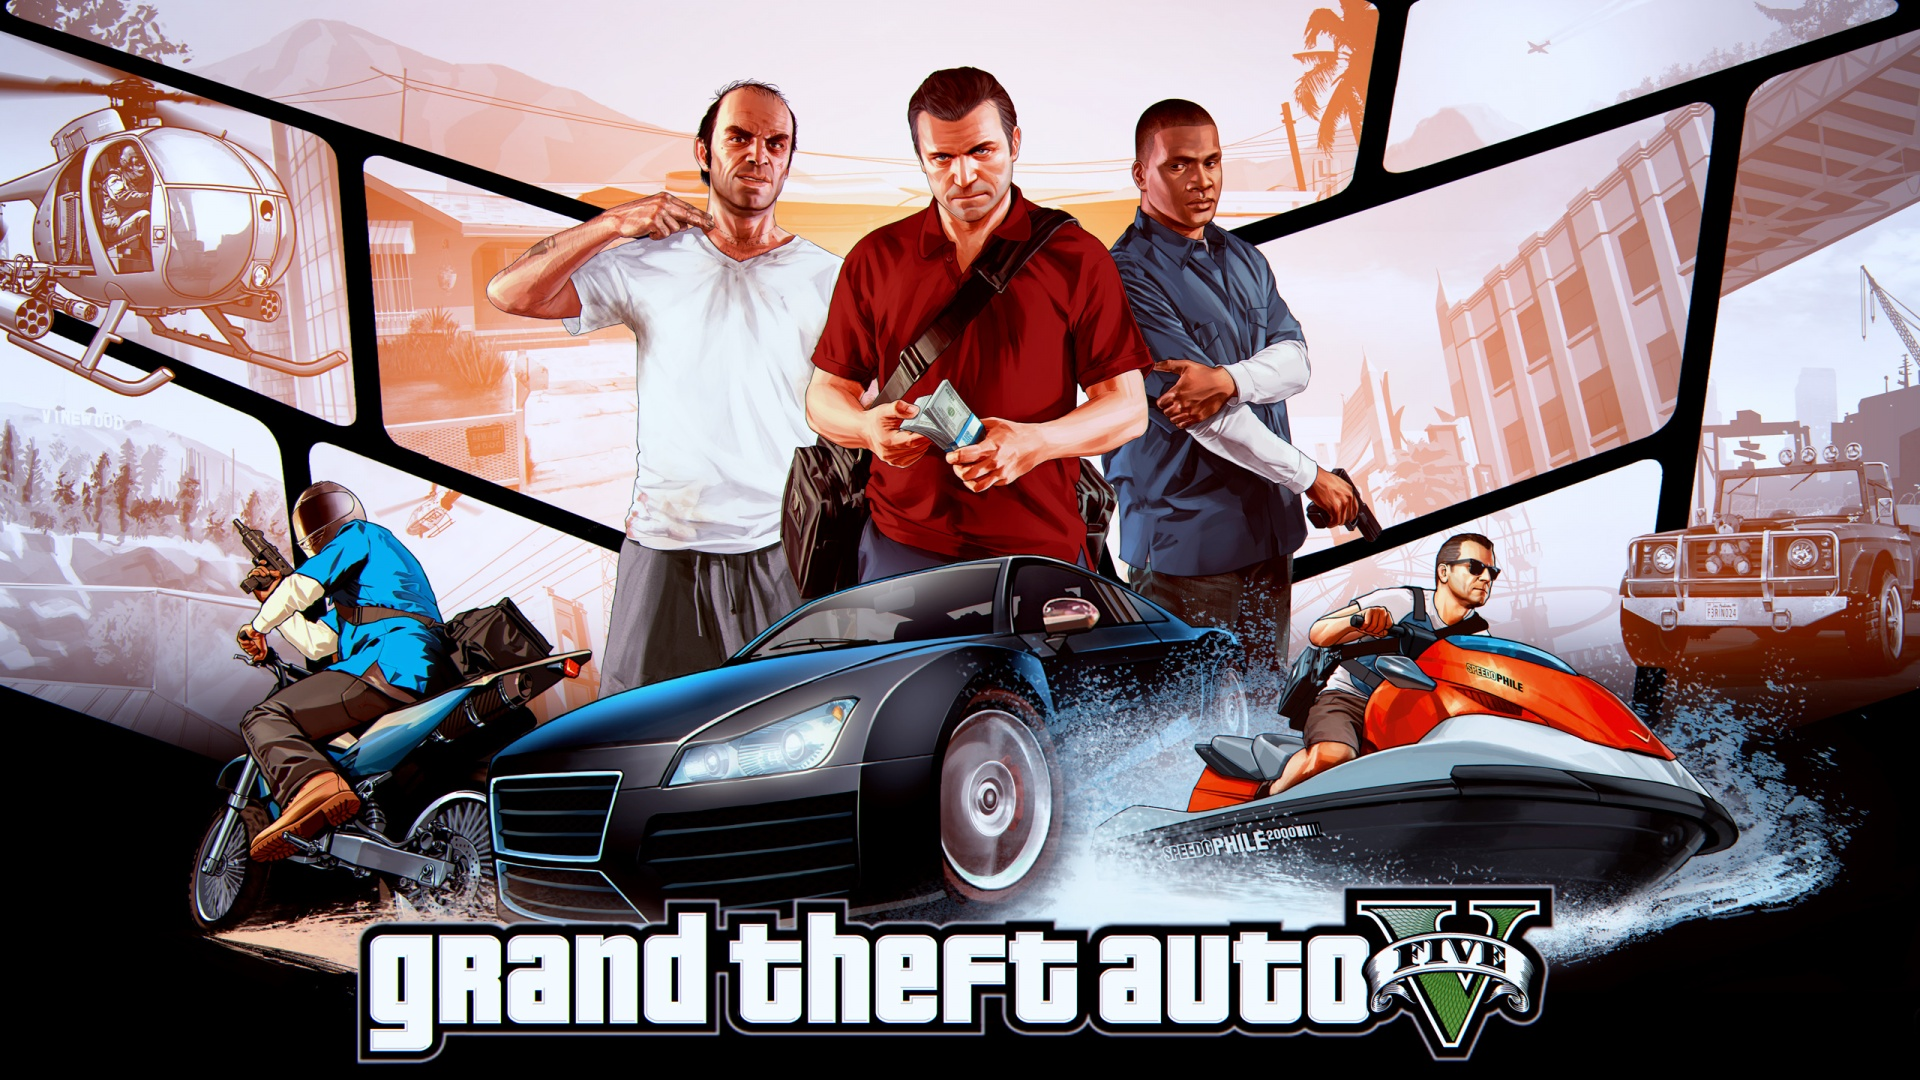 Free download Grand Theft Auto V Wallpapers HD Wallpapers ...